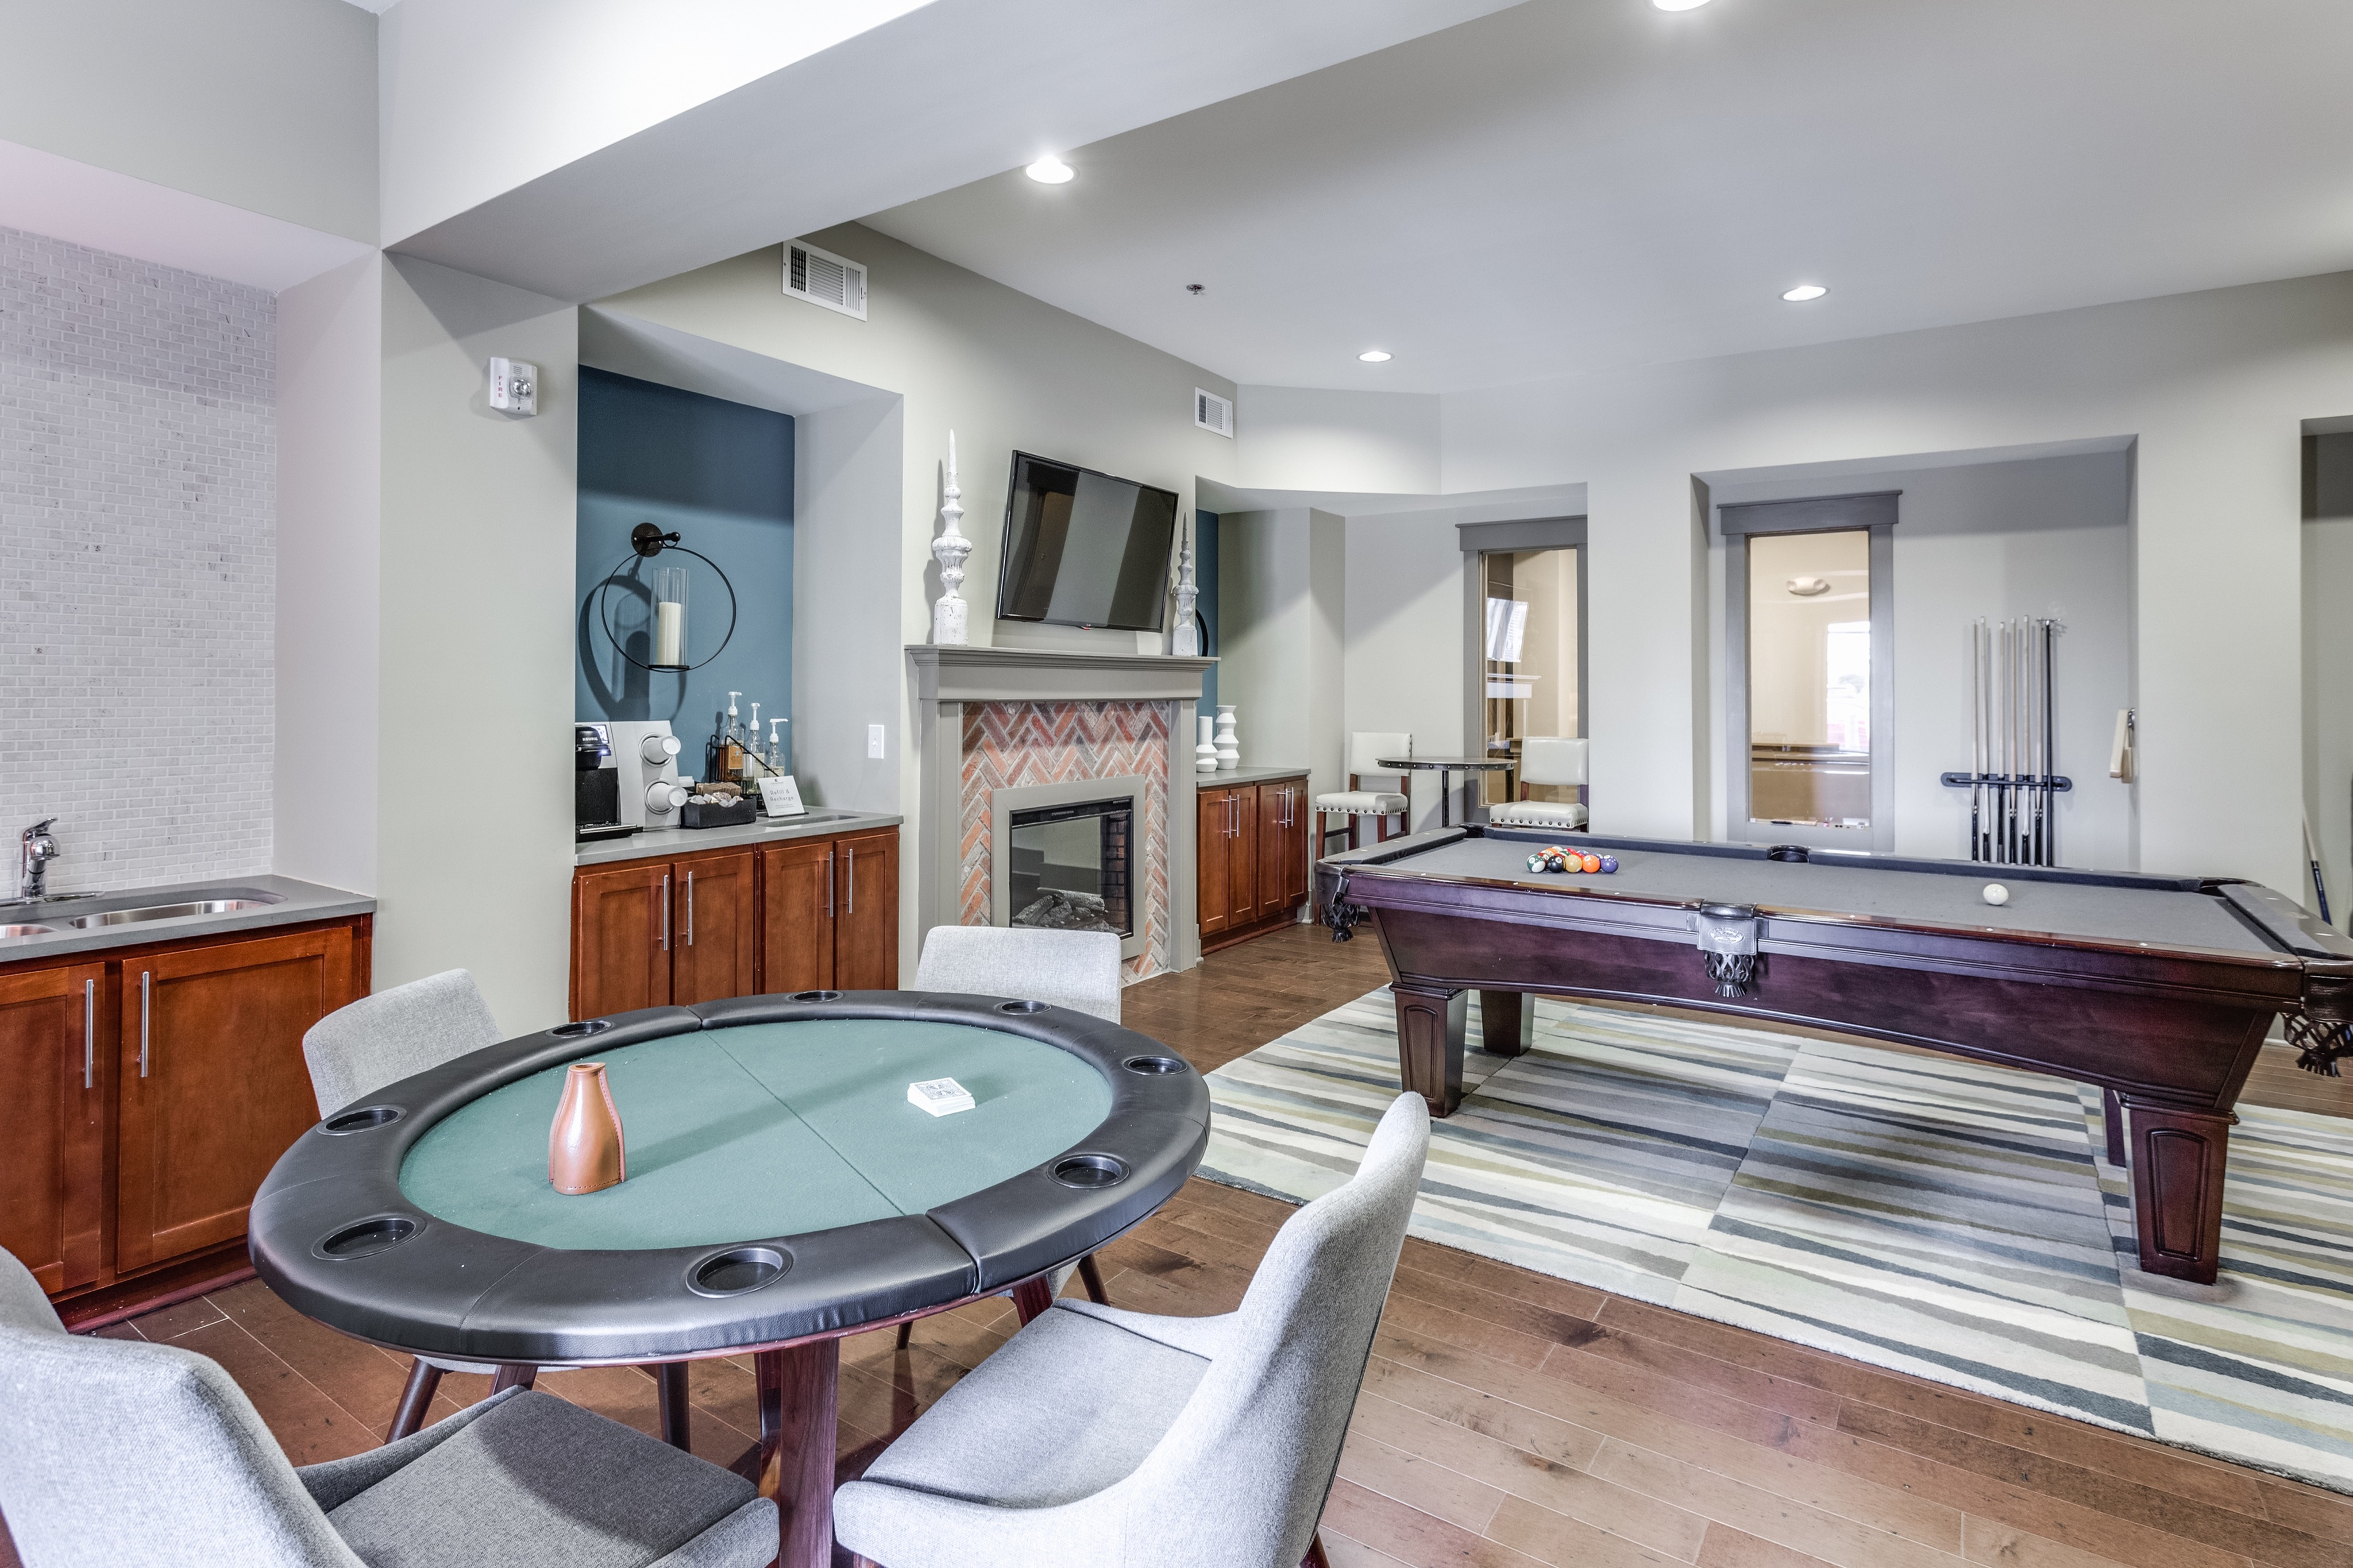 View of Game Room, Showing Poker Table, Chairs, Pool Table, and Café Bar at Alpha Mill Apartments